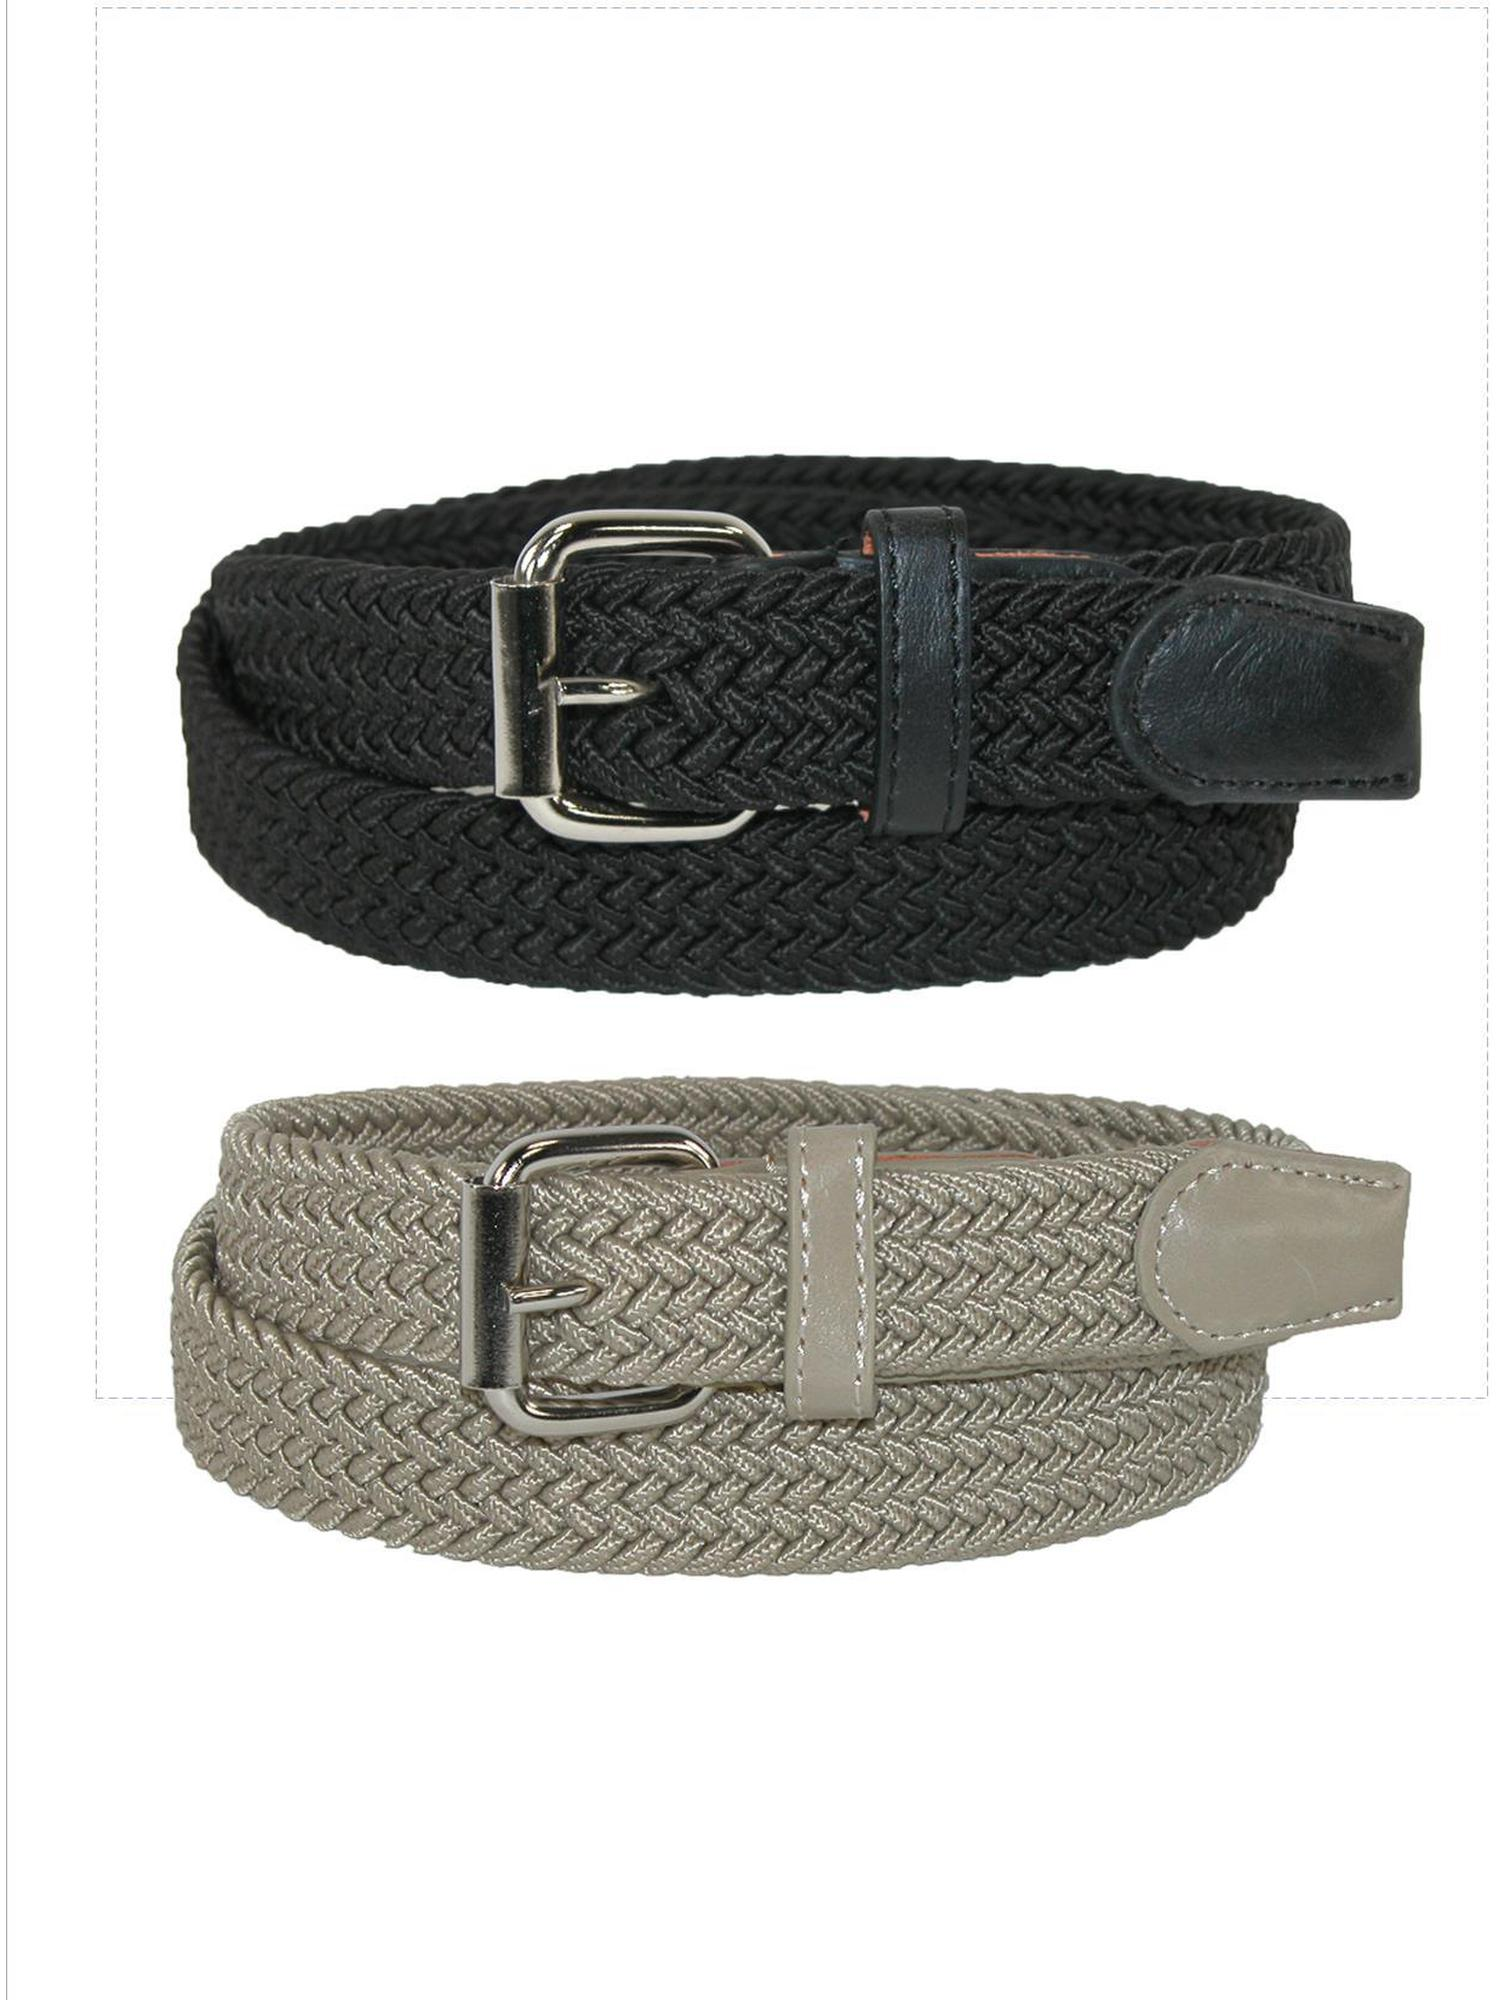 Kid's Elastic Braided Stretch Belt (Pack of 2 Colors)